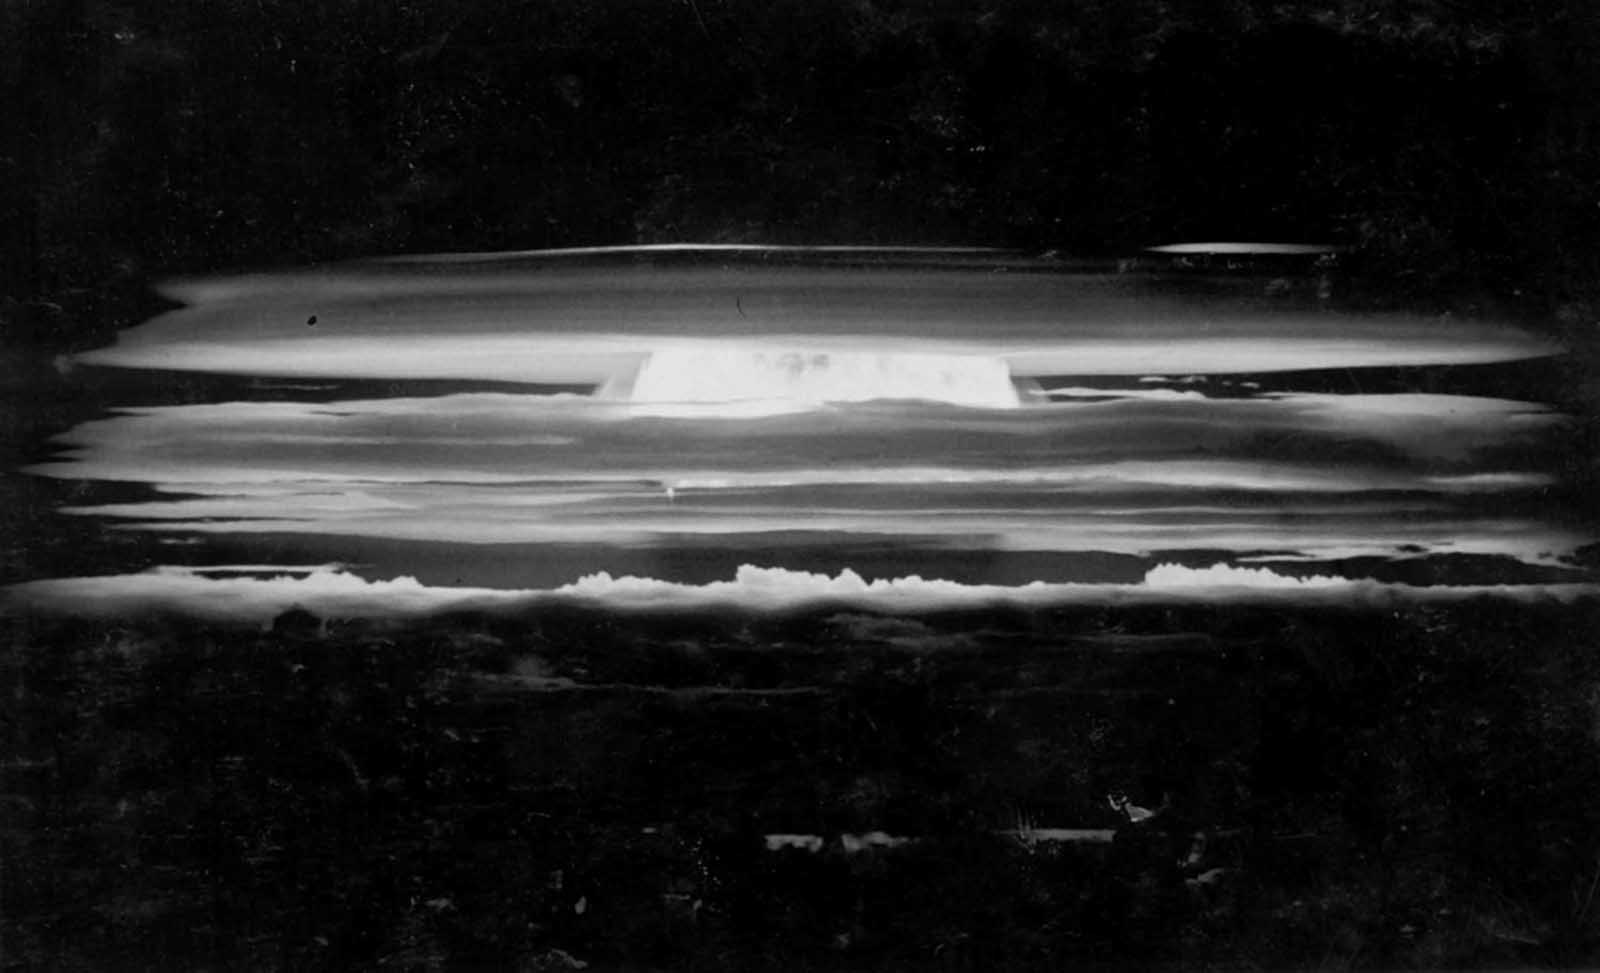 The test explosion of a hydrogen bomb during Operation Redwing over the Bikini Atoll on May 20, 1956.